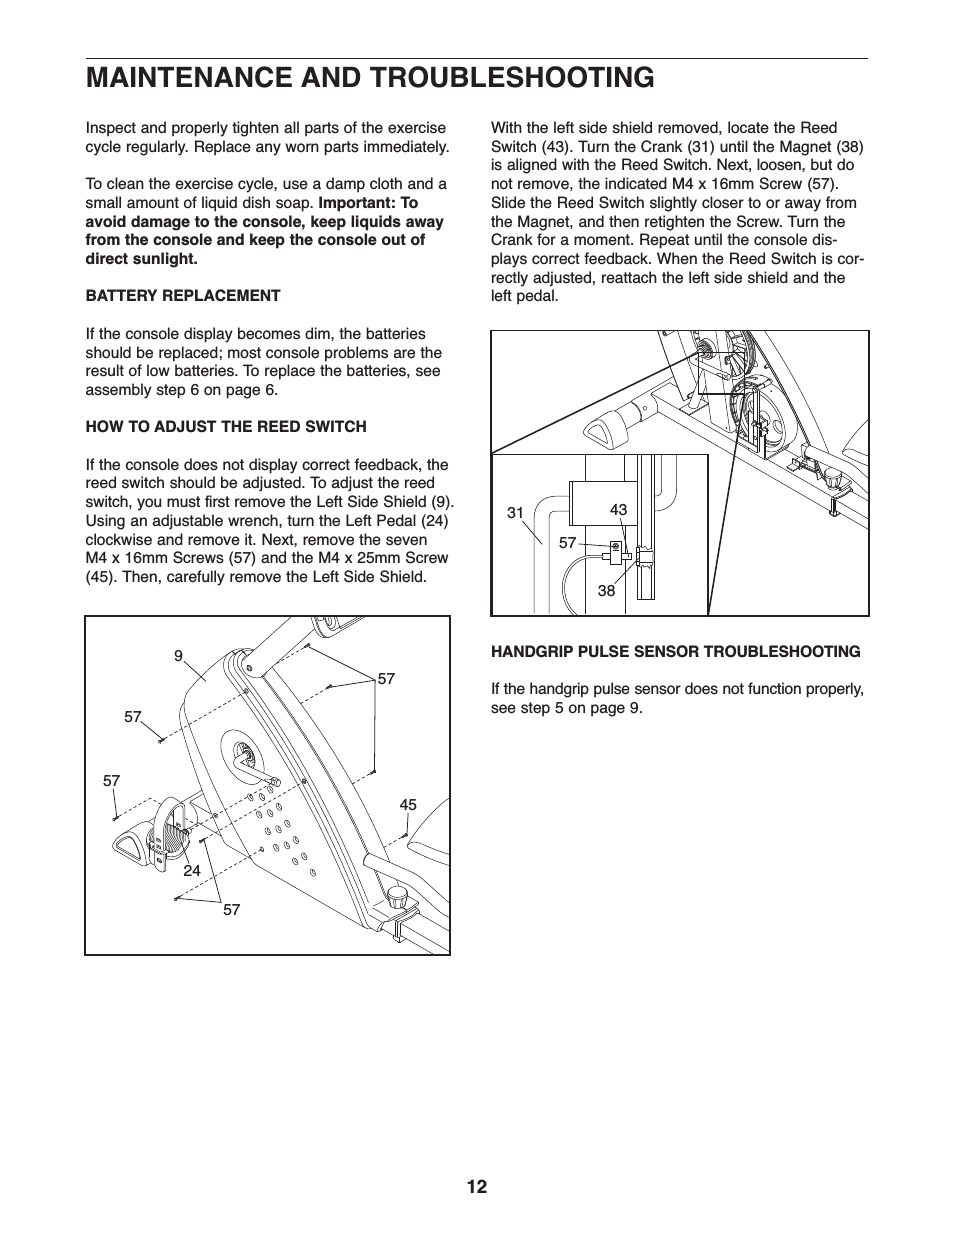 Proform Gr 80 Owners Manual